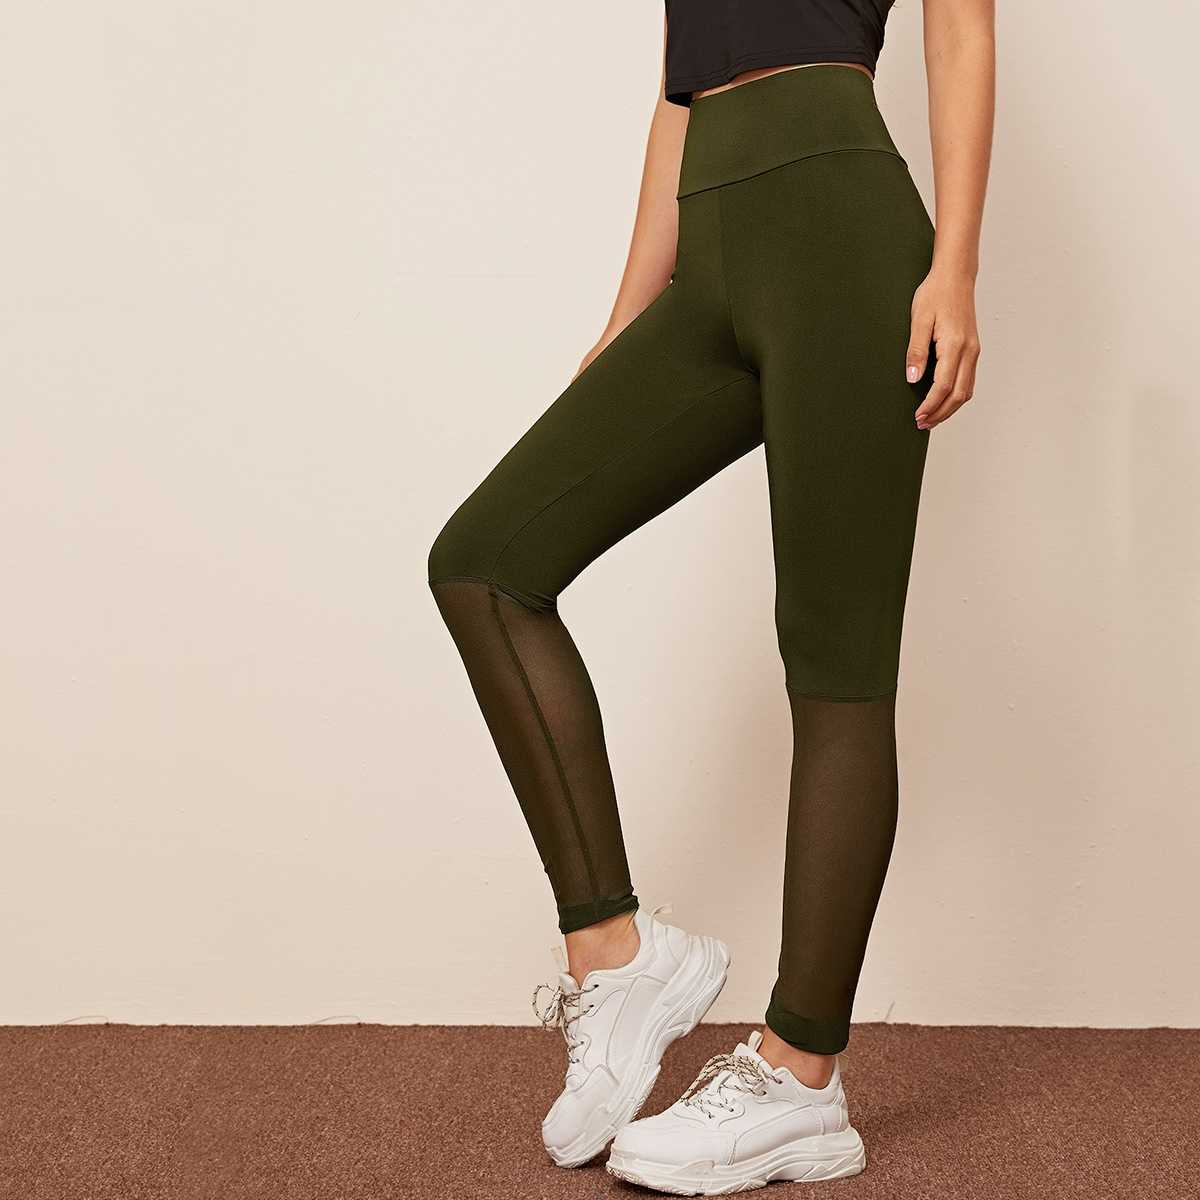 Wide Band Waist Mesh Insert Leggings in Army Green by ROMWE on GOOFASH